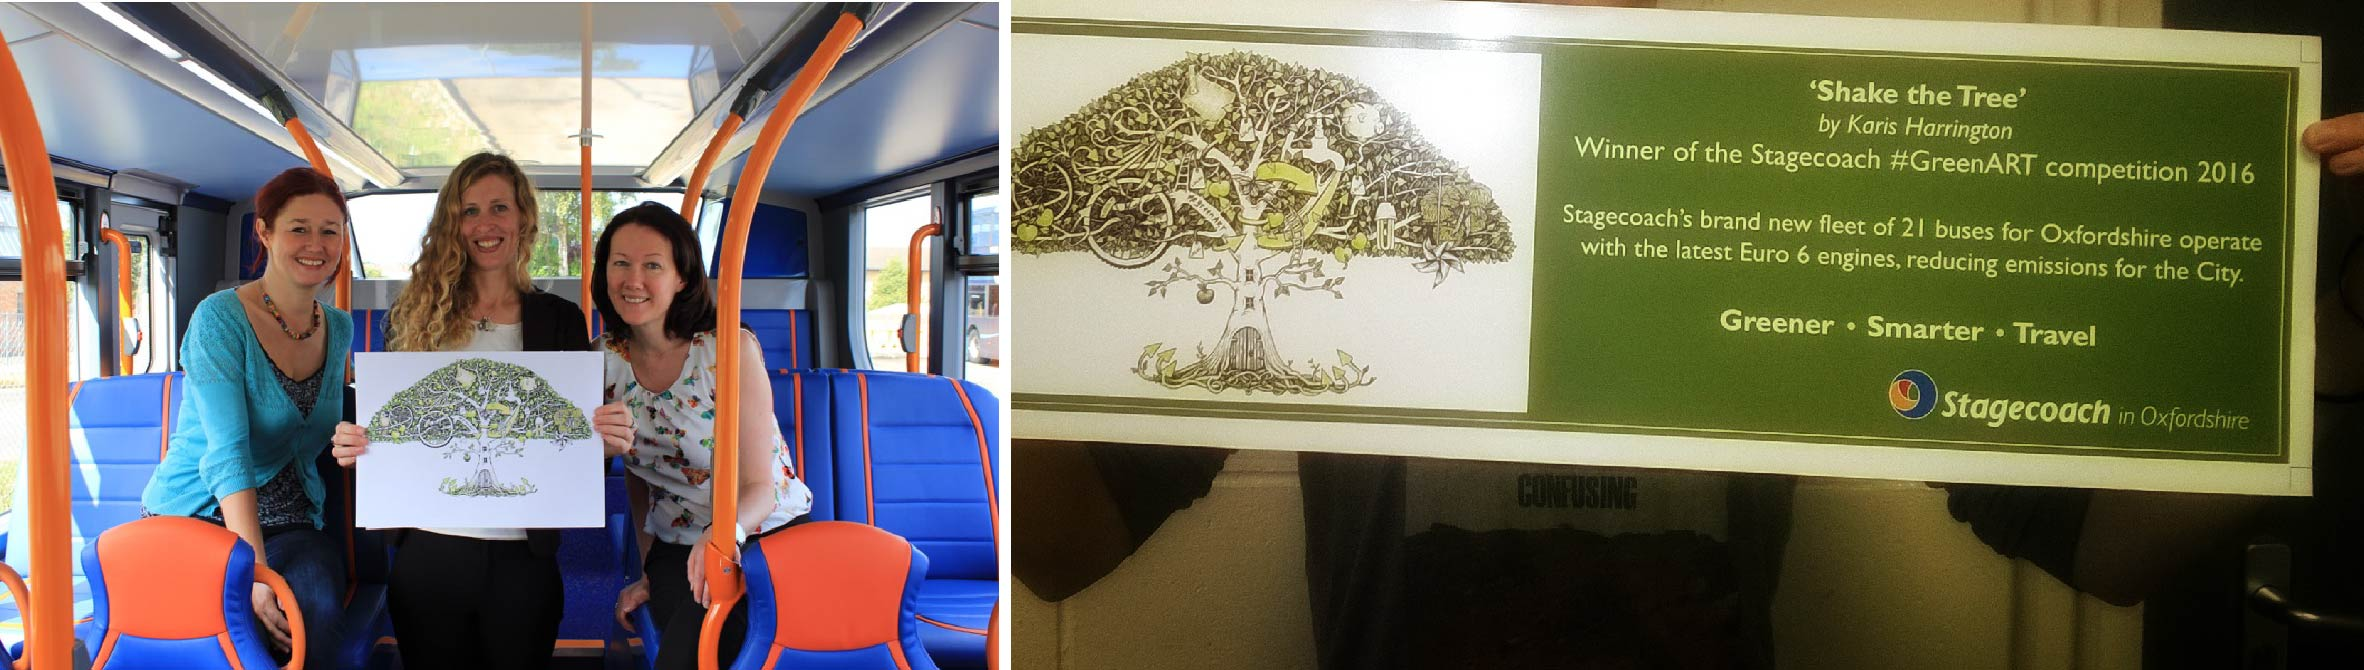 Stagecoach-in-Oxfordshires-GreenART-winner-inside-bus-high-res-01.jpg